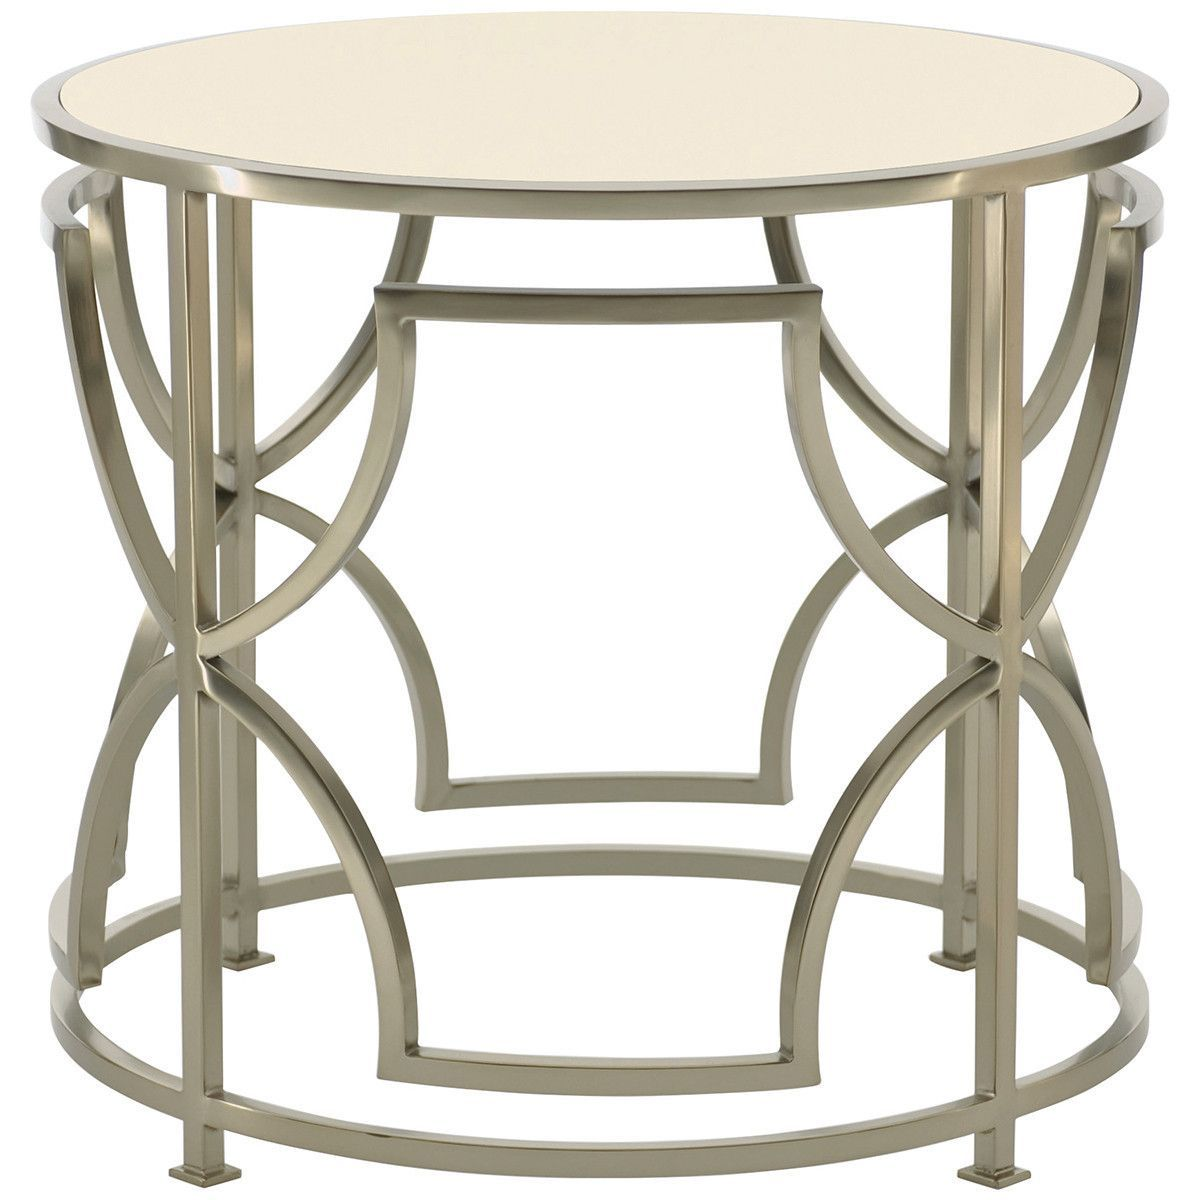 Master bedroom dimensions  Haven Drum Table  Products  Pinterest  Drum table Drums and